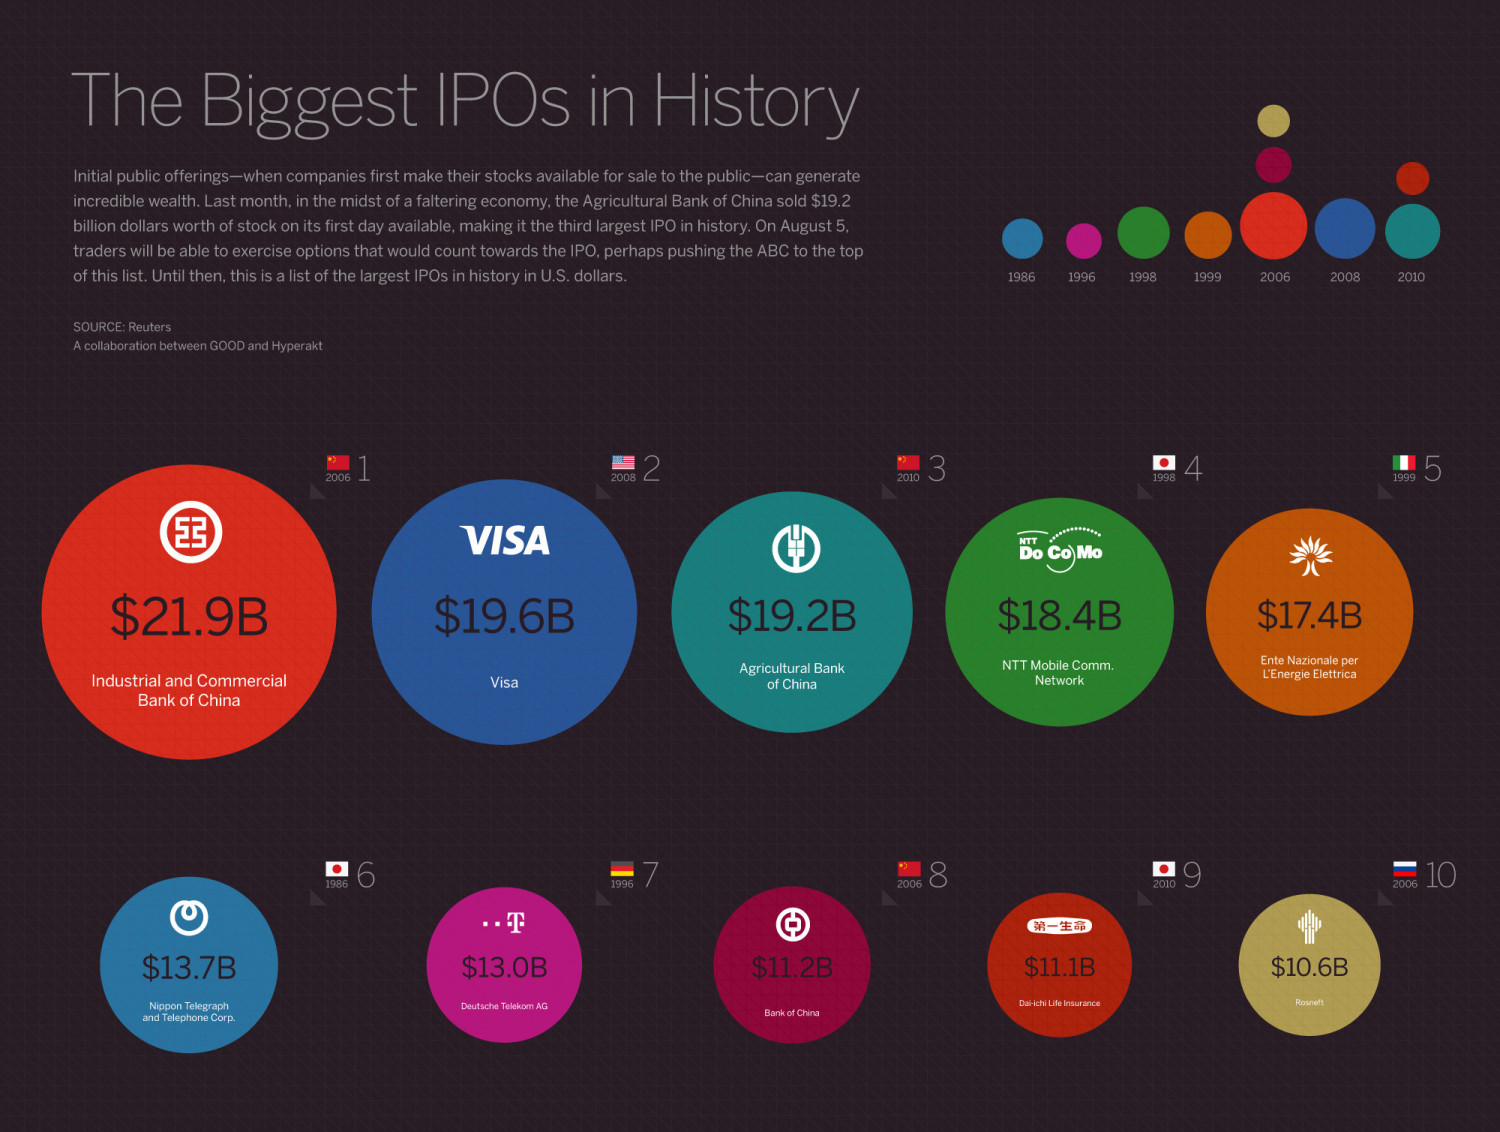 The Biggest IPOs in History Infographic